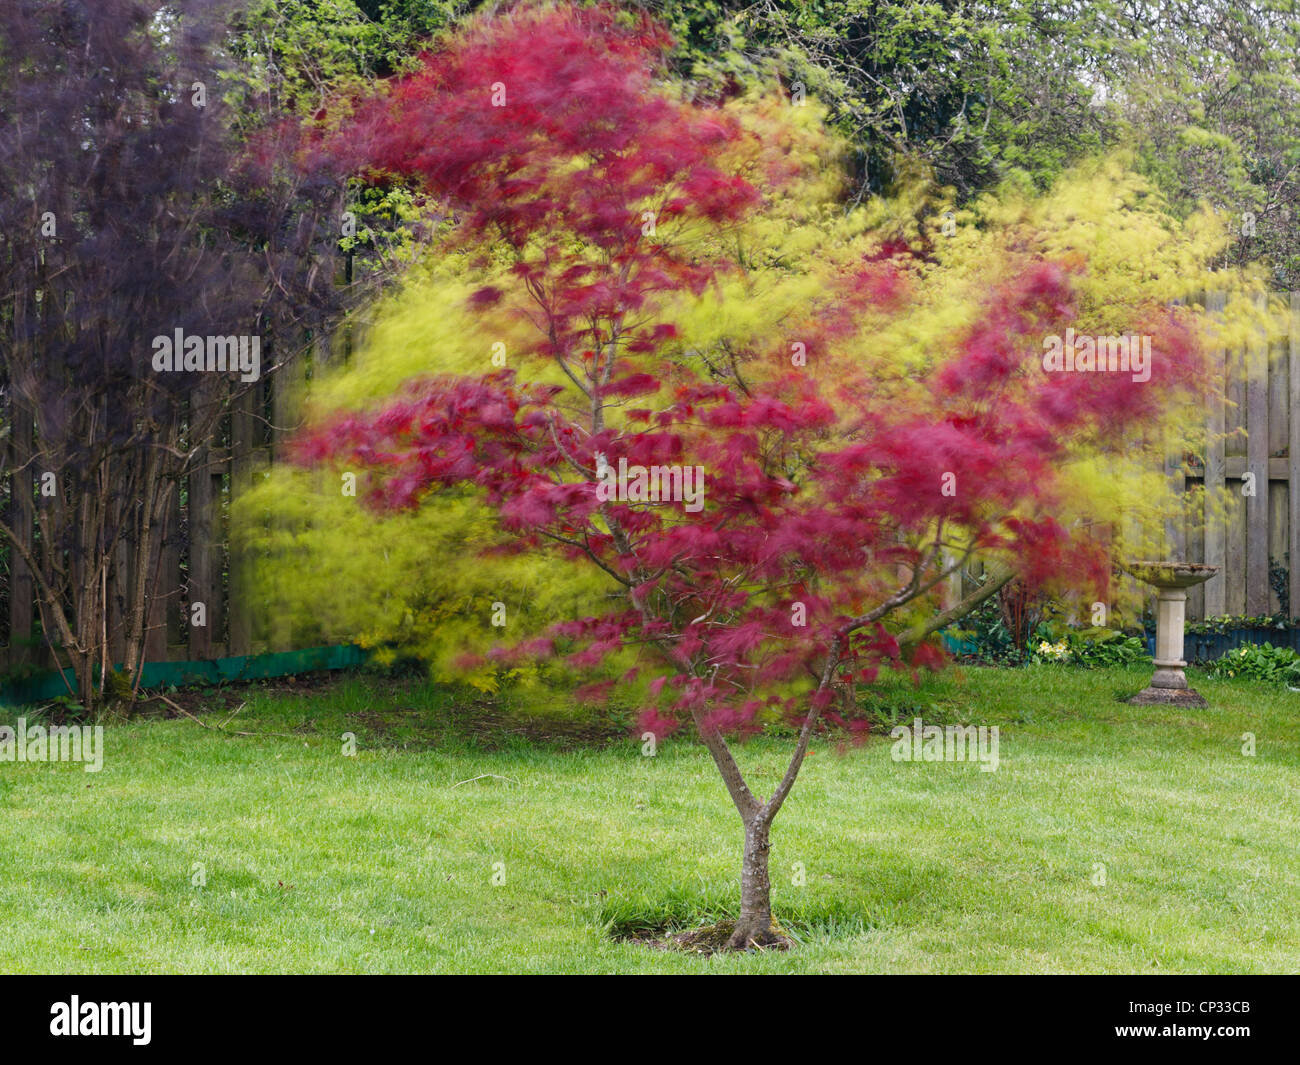 Blurred leaves of Red Japanese Maple tree Acer palmatum 'Atropurpureum' blowing in the wind in a domestic - Stock Image